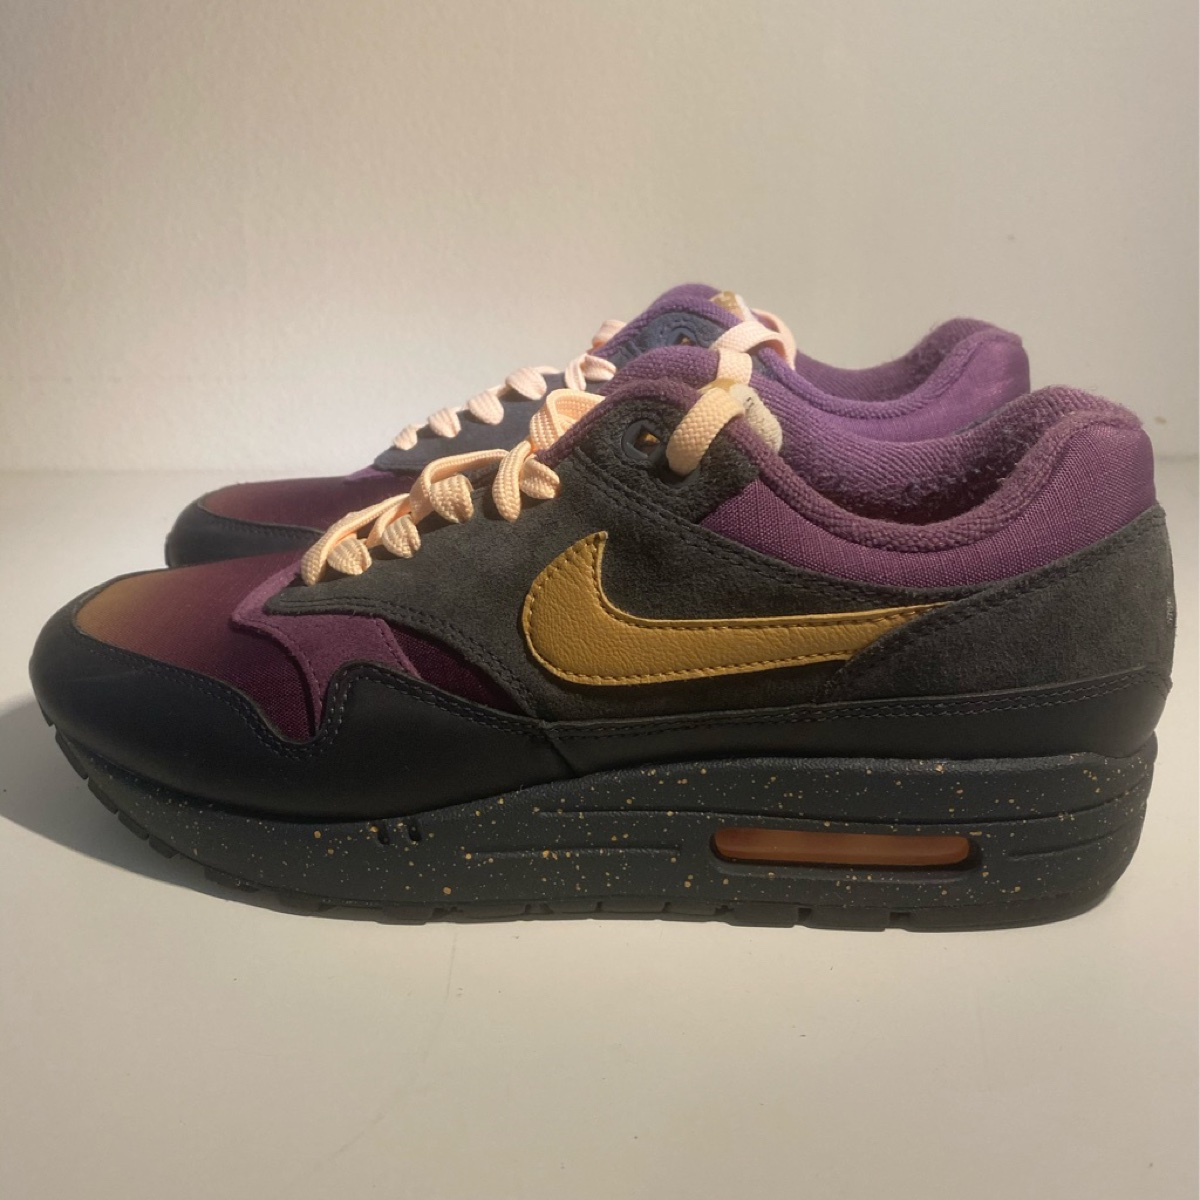 Air Max 1 Premium 'Pro Purple Fade'